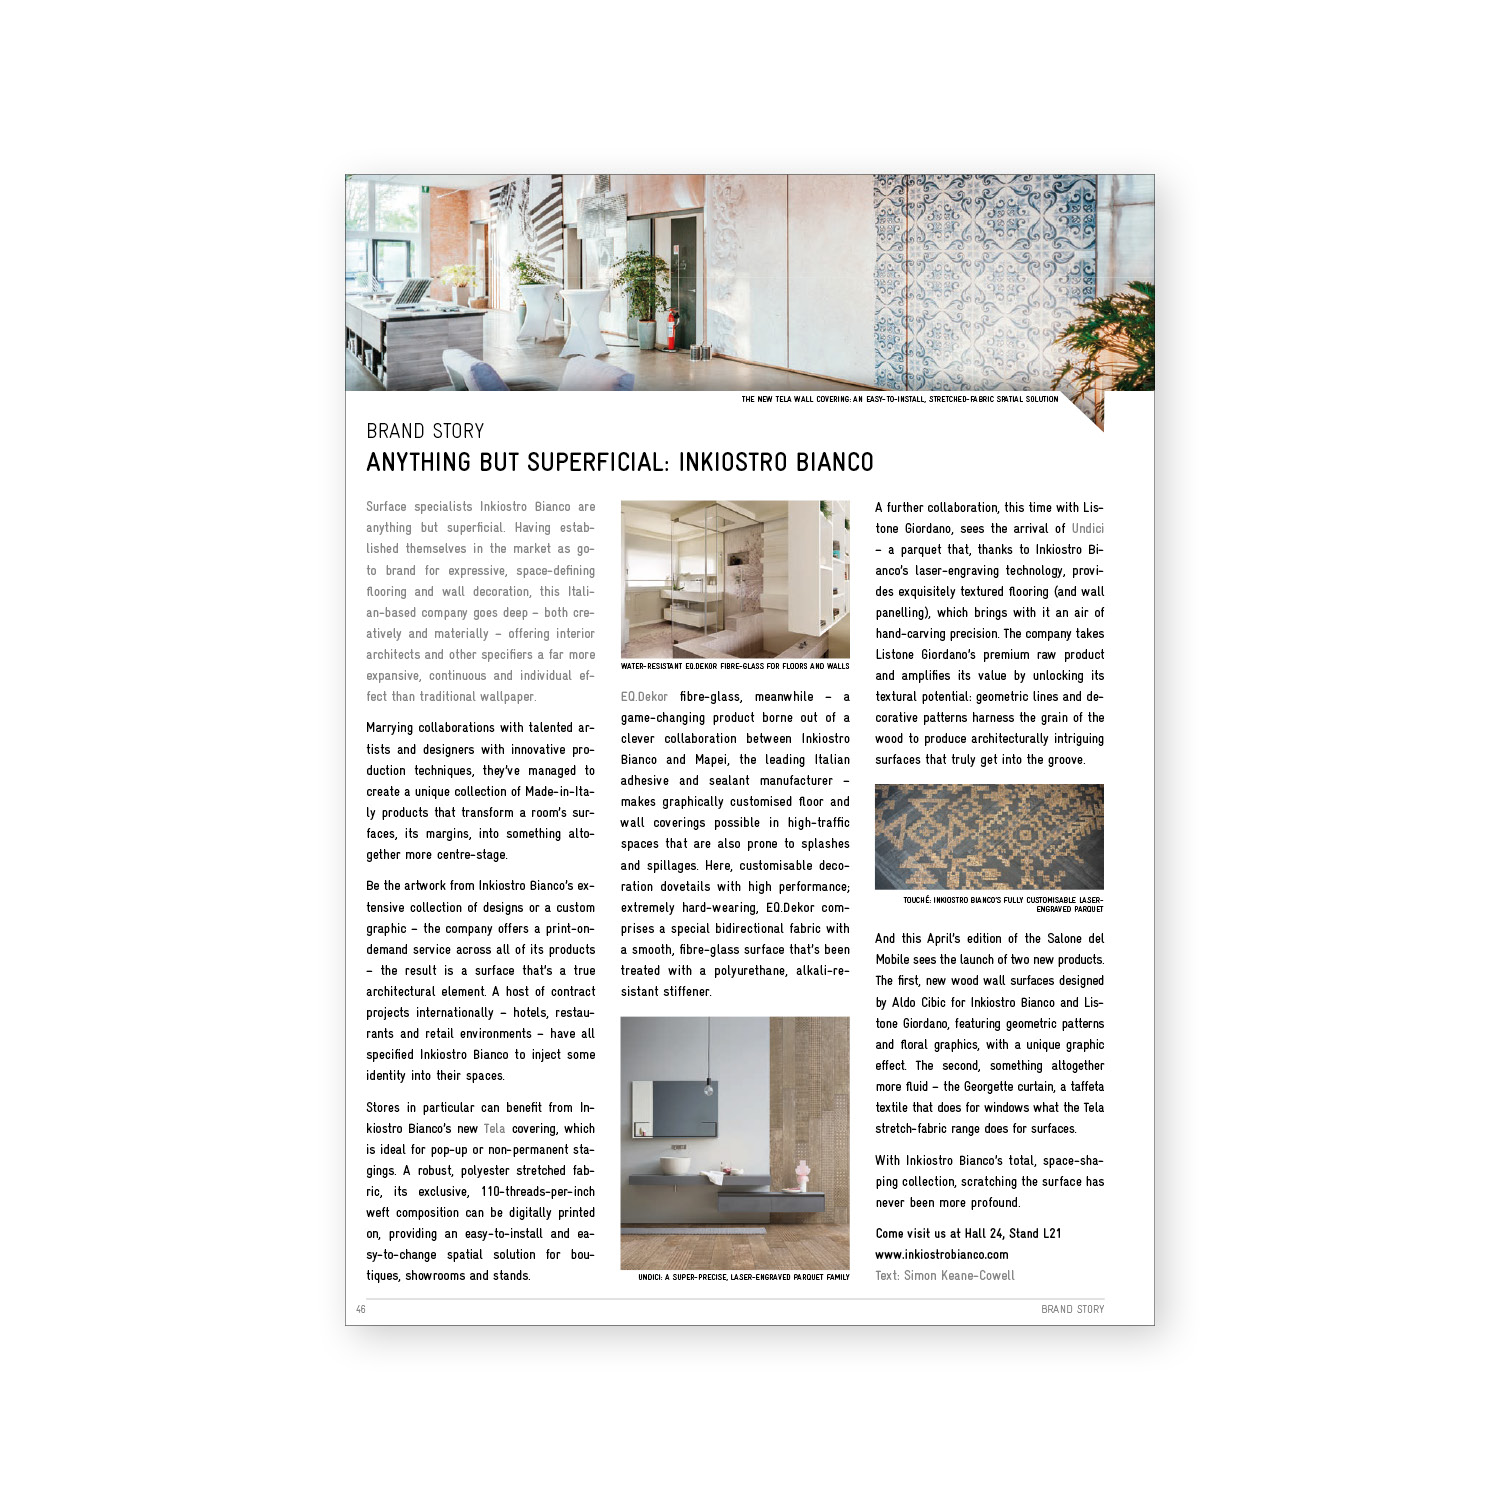 architonic-guide_guide-feature_inkiostro-bianco.jpg